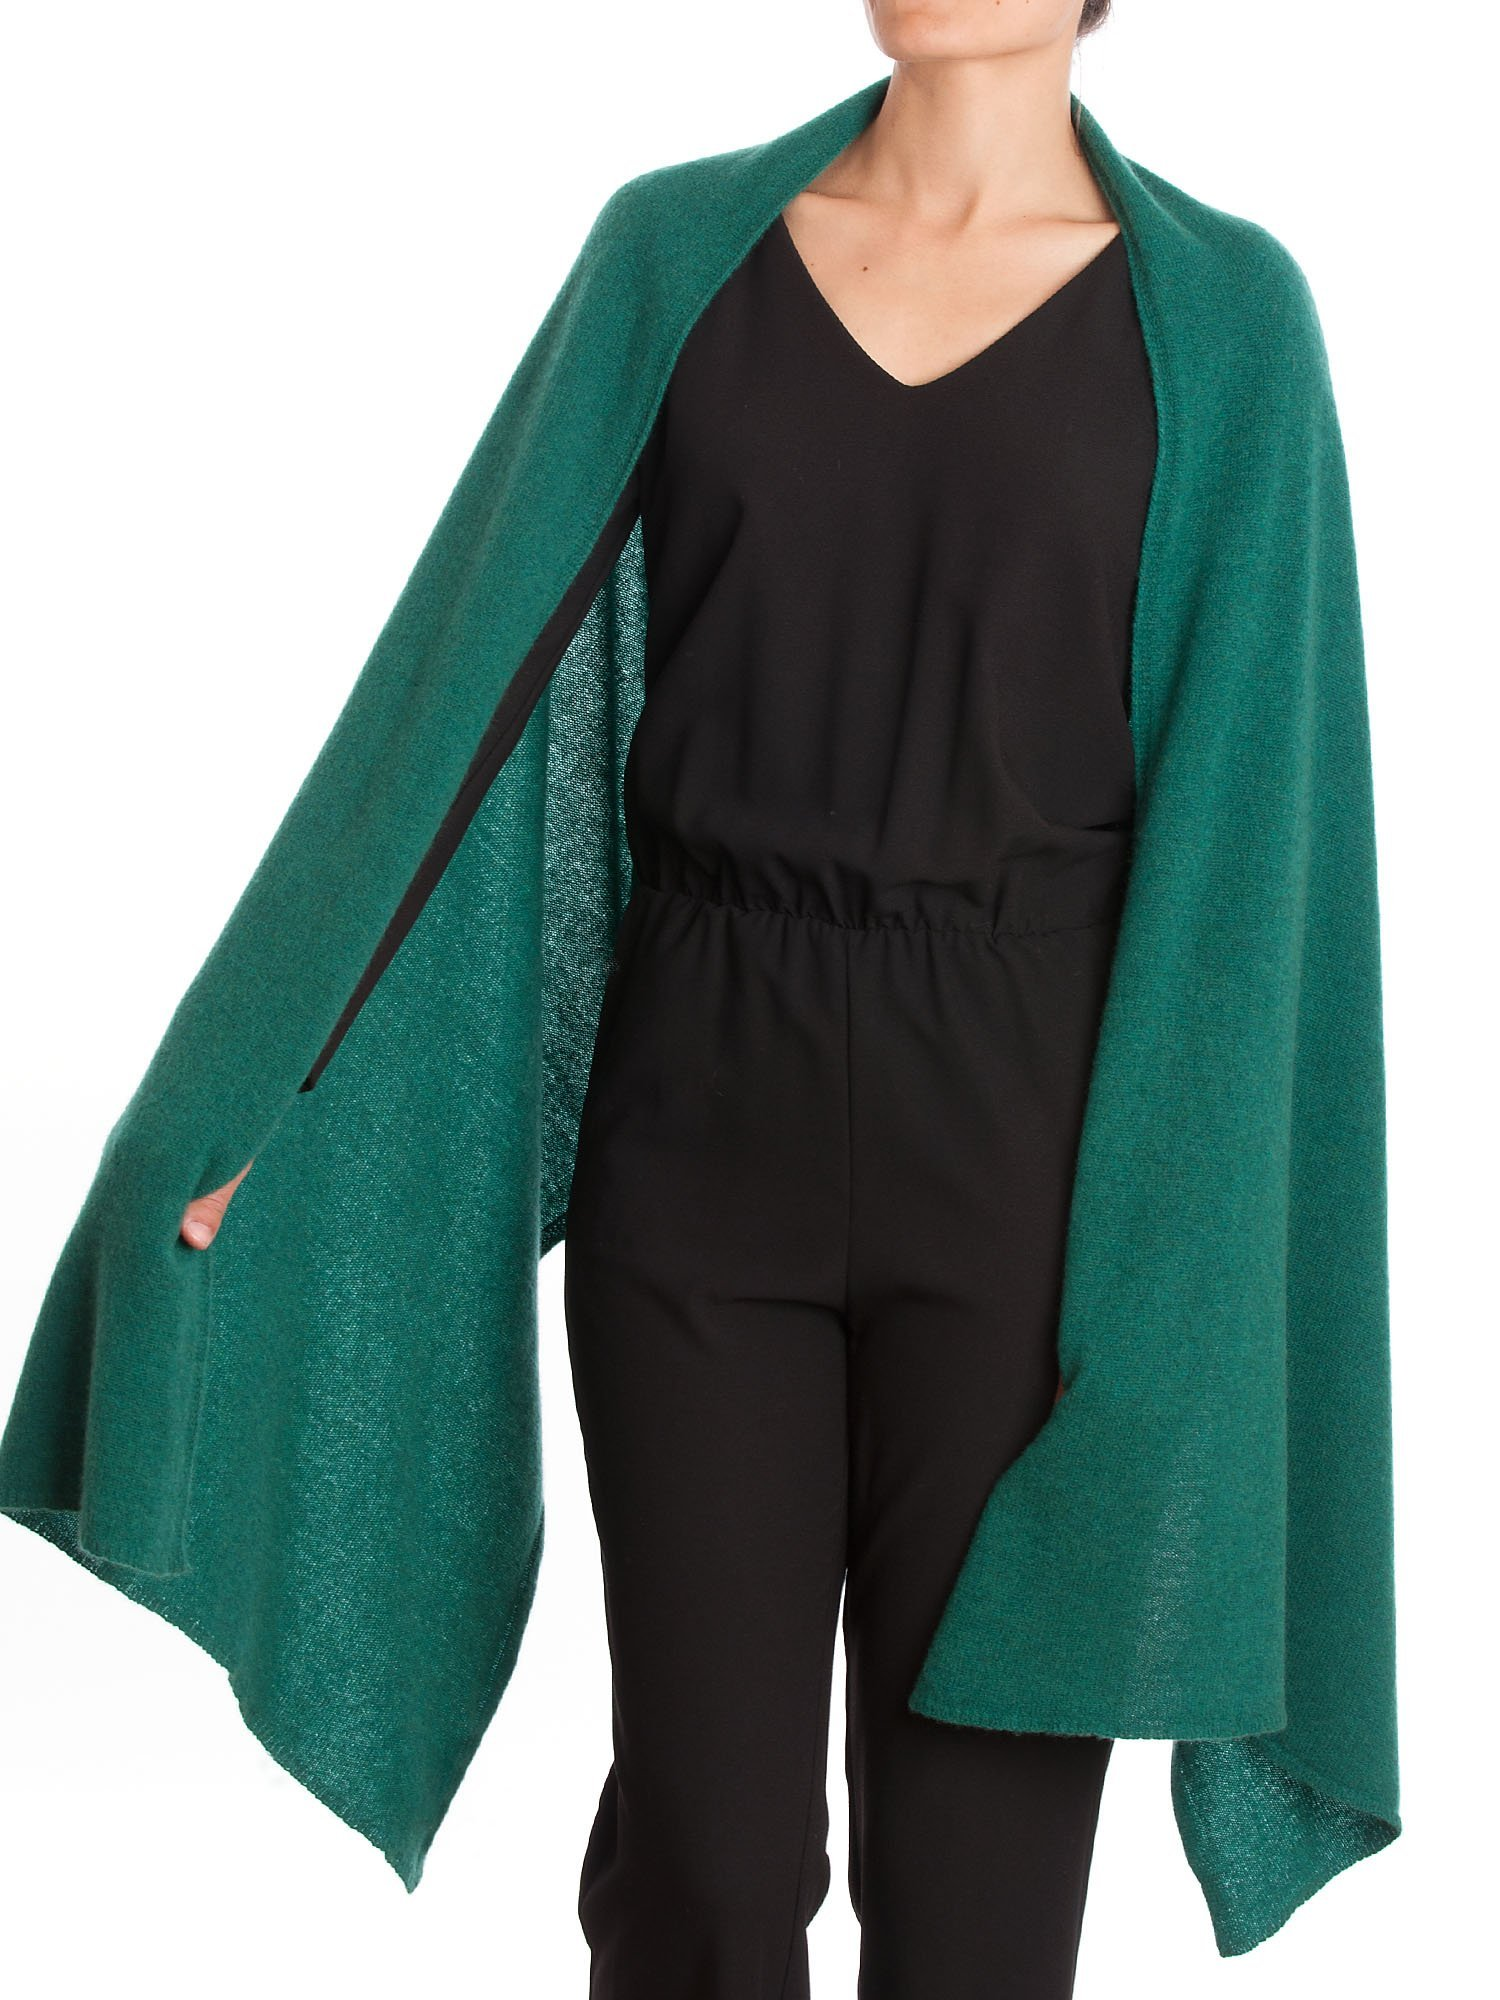 Dalle Piane Cashmere - Stole 100% cashmere - Made in Italy, Color: Green, One size